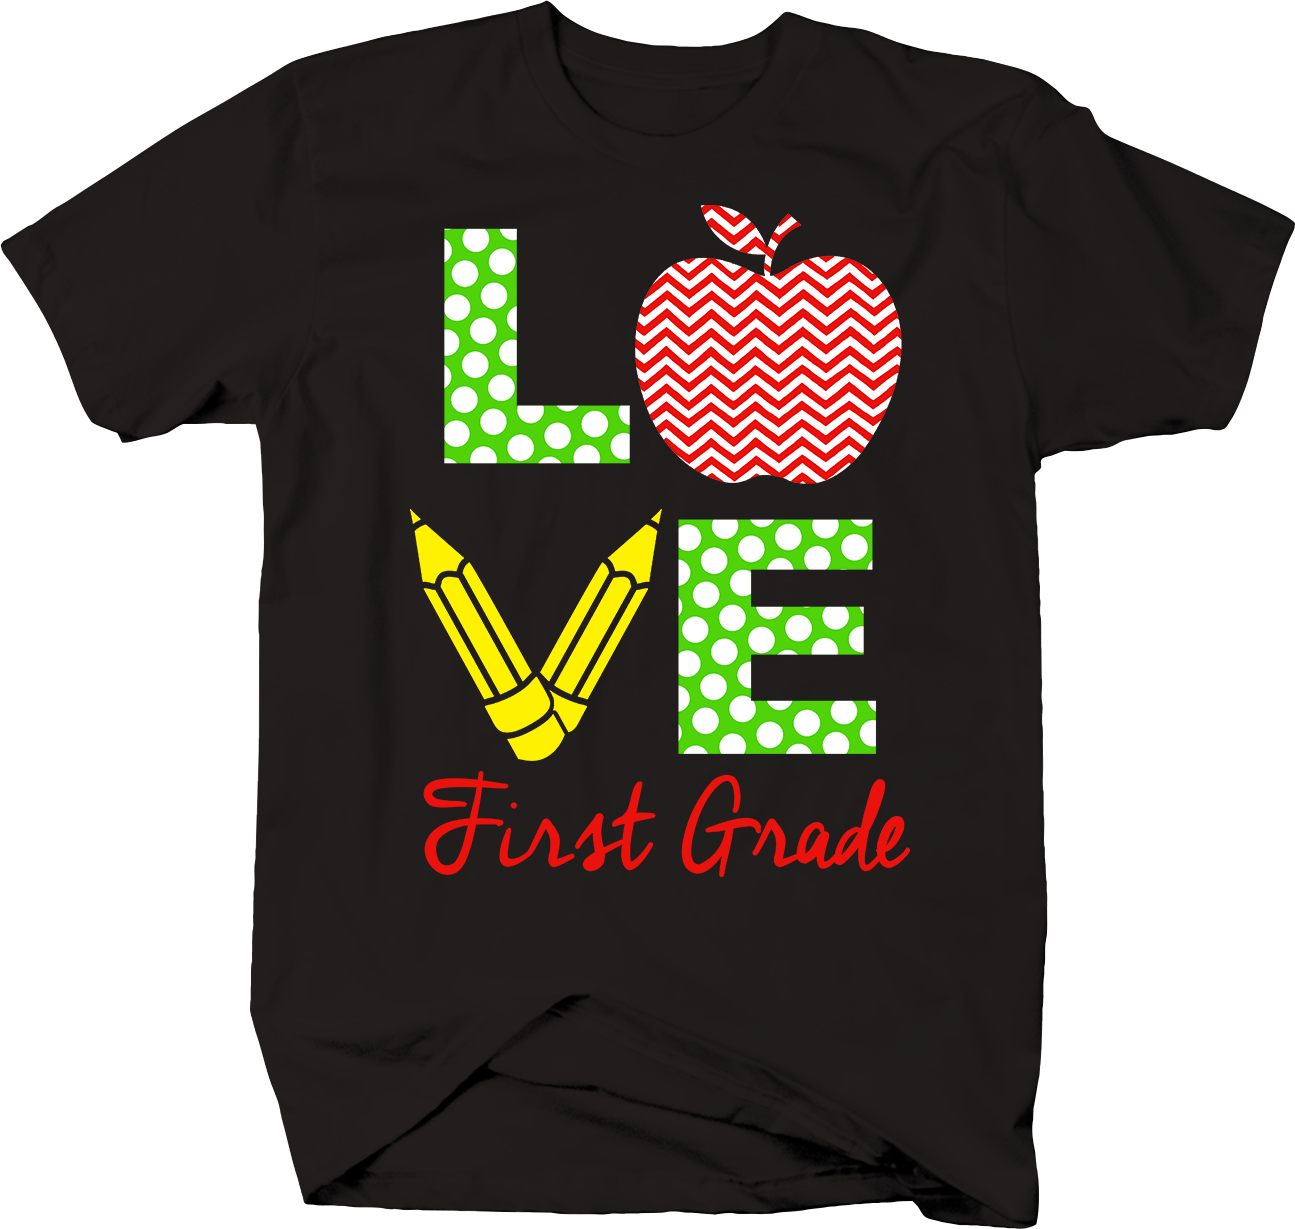 Love First Grade For Elementary School Students Bts Men's T-Shirt - Nuu Shirtz